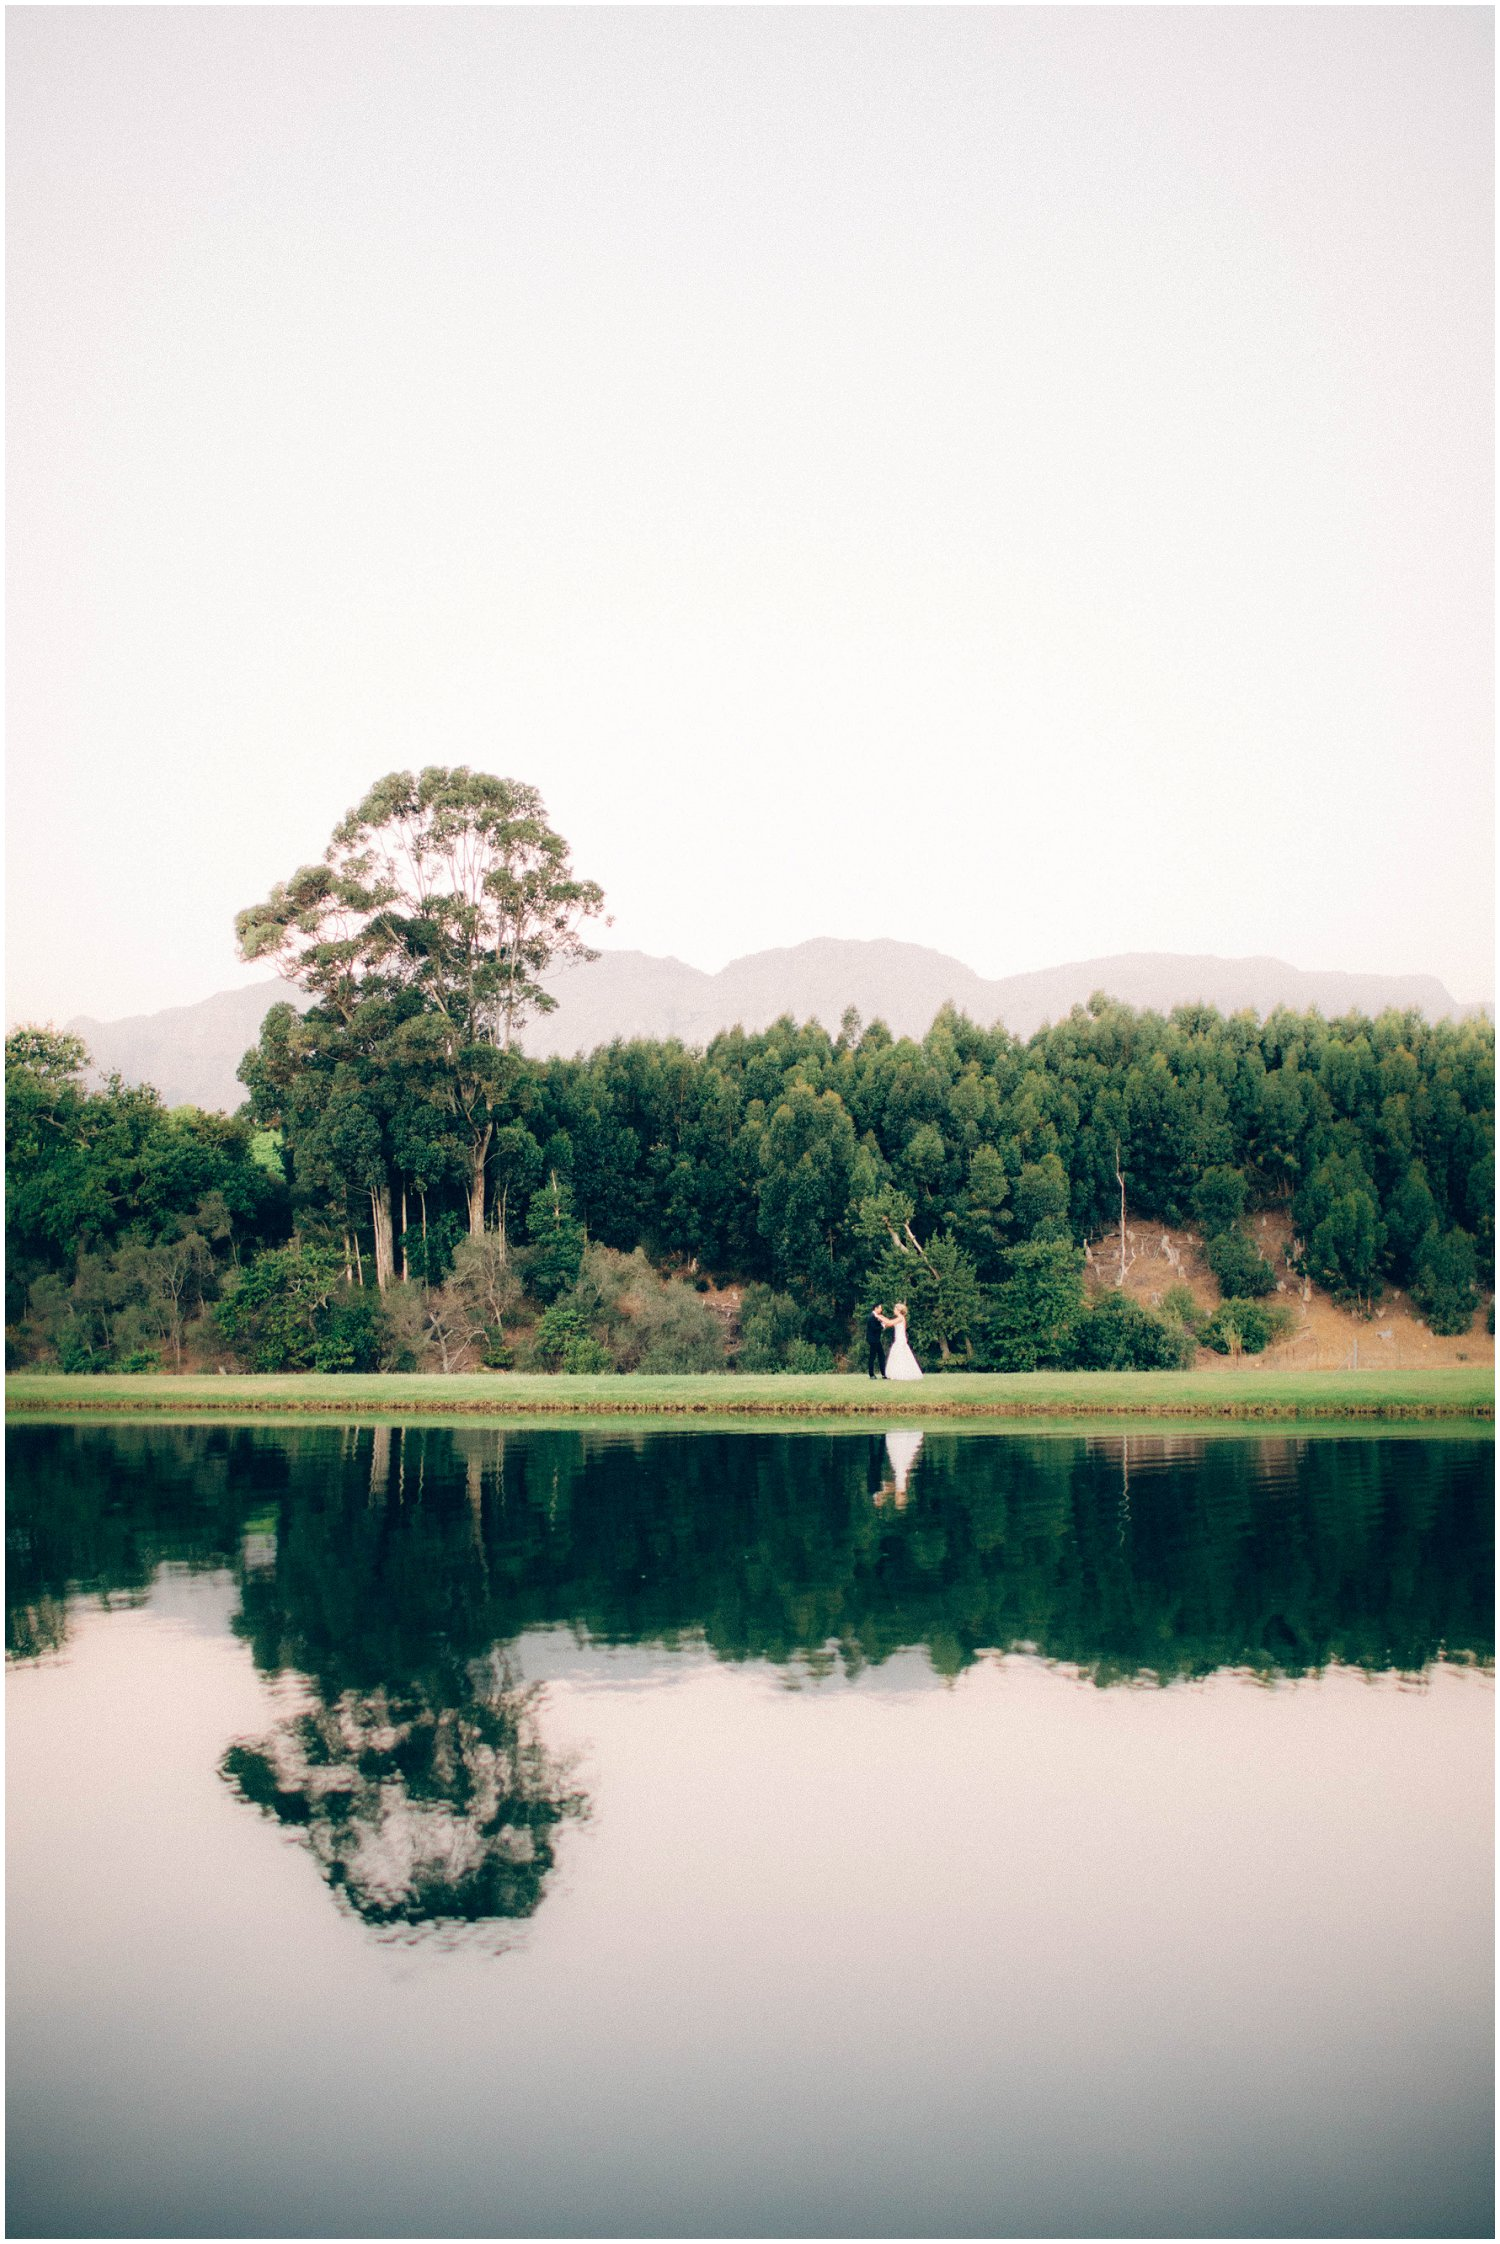 Top Artistic Creative Documentary Wedding Photographer Cape Town South Africa Rue Kruger_0147.jpg